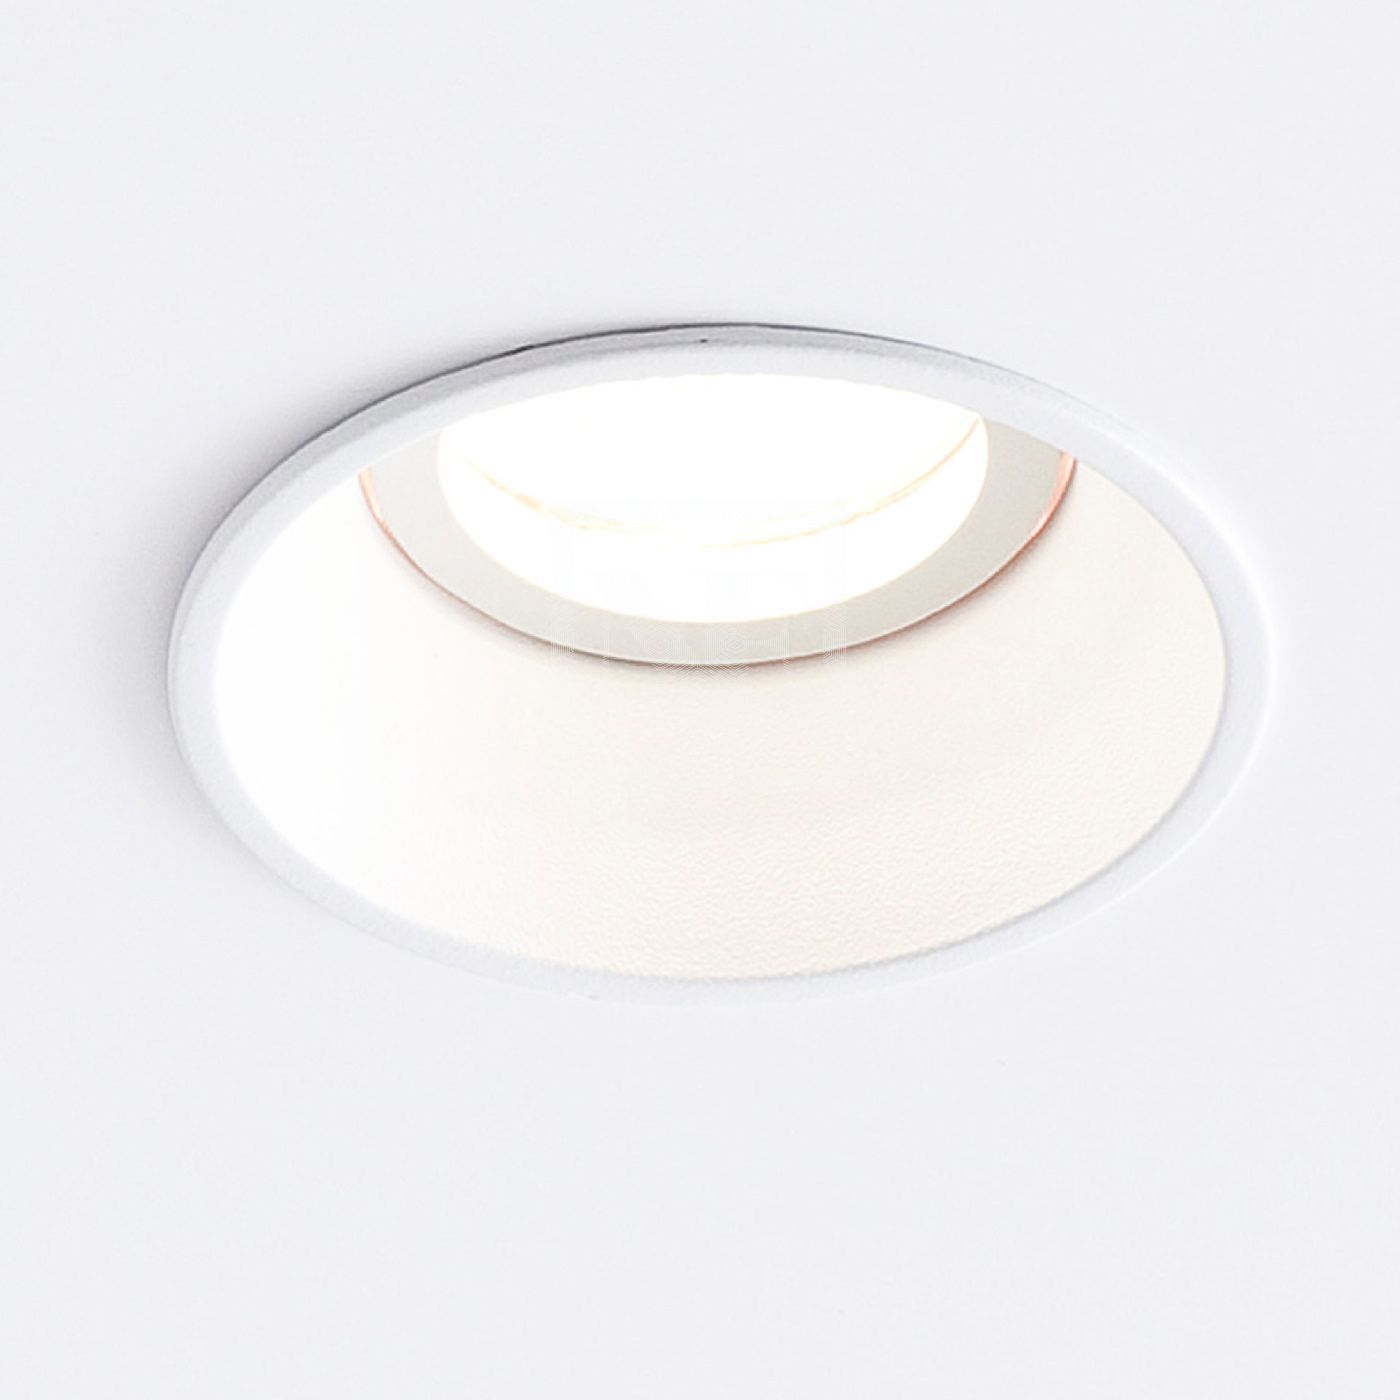 Wever ducr deep 10 mr16 recessed lamp wever ducr wever ducr deep 10 mr16 recessed lamp mozeypictures Images